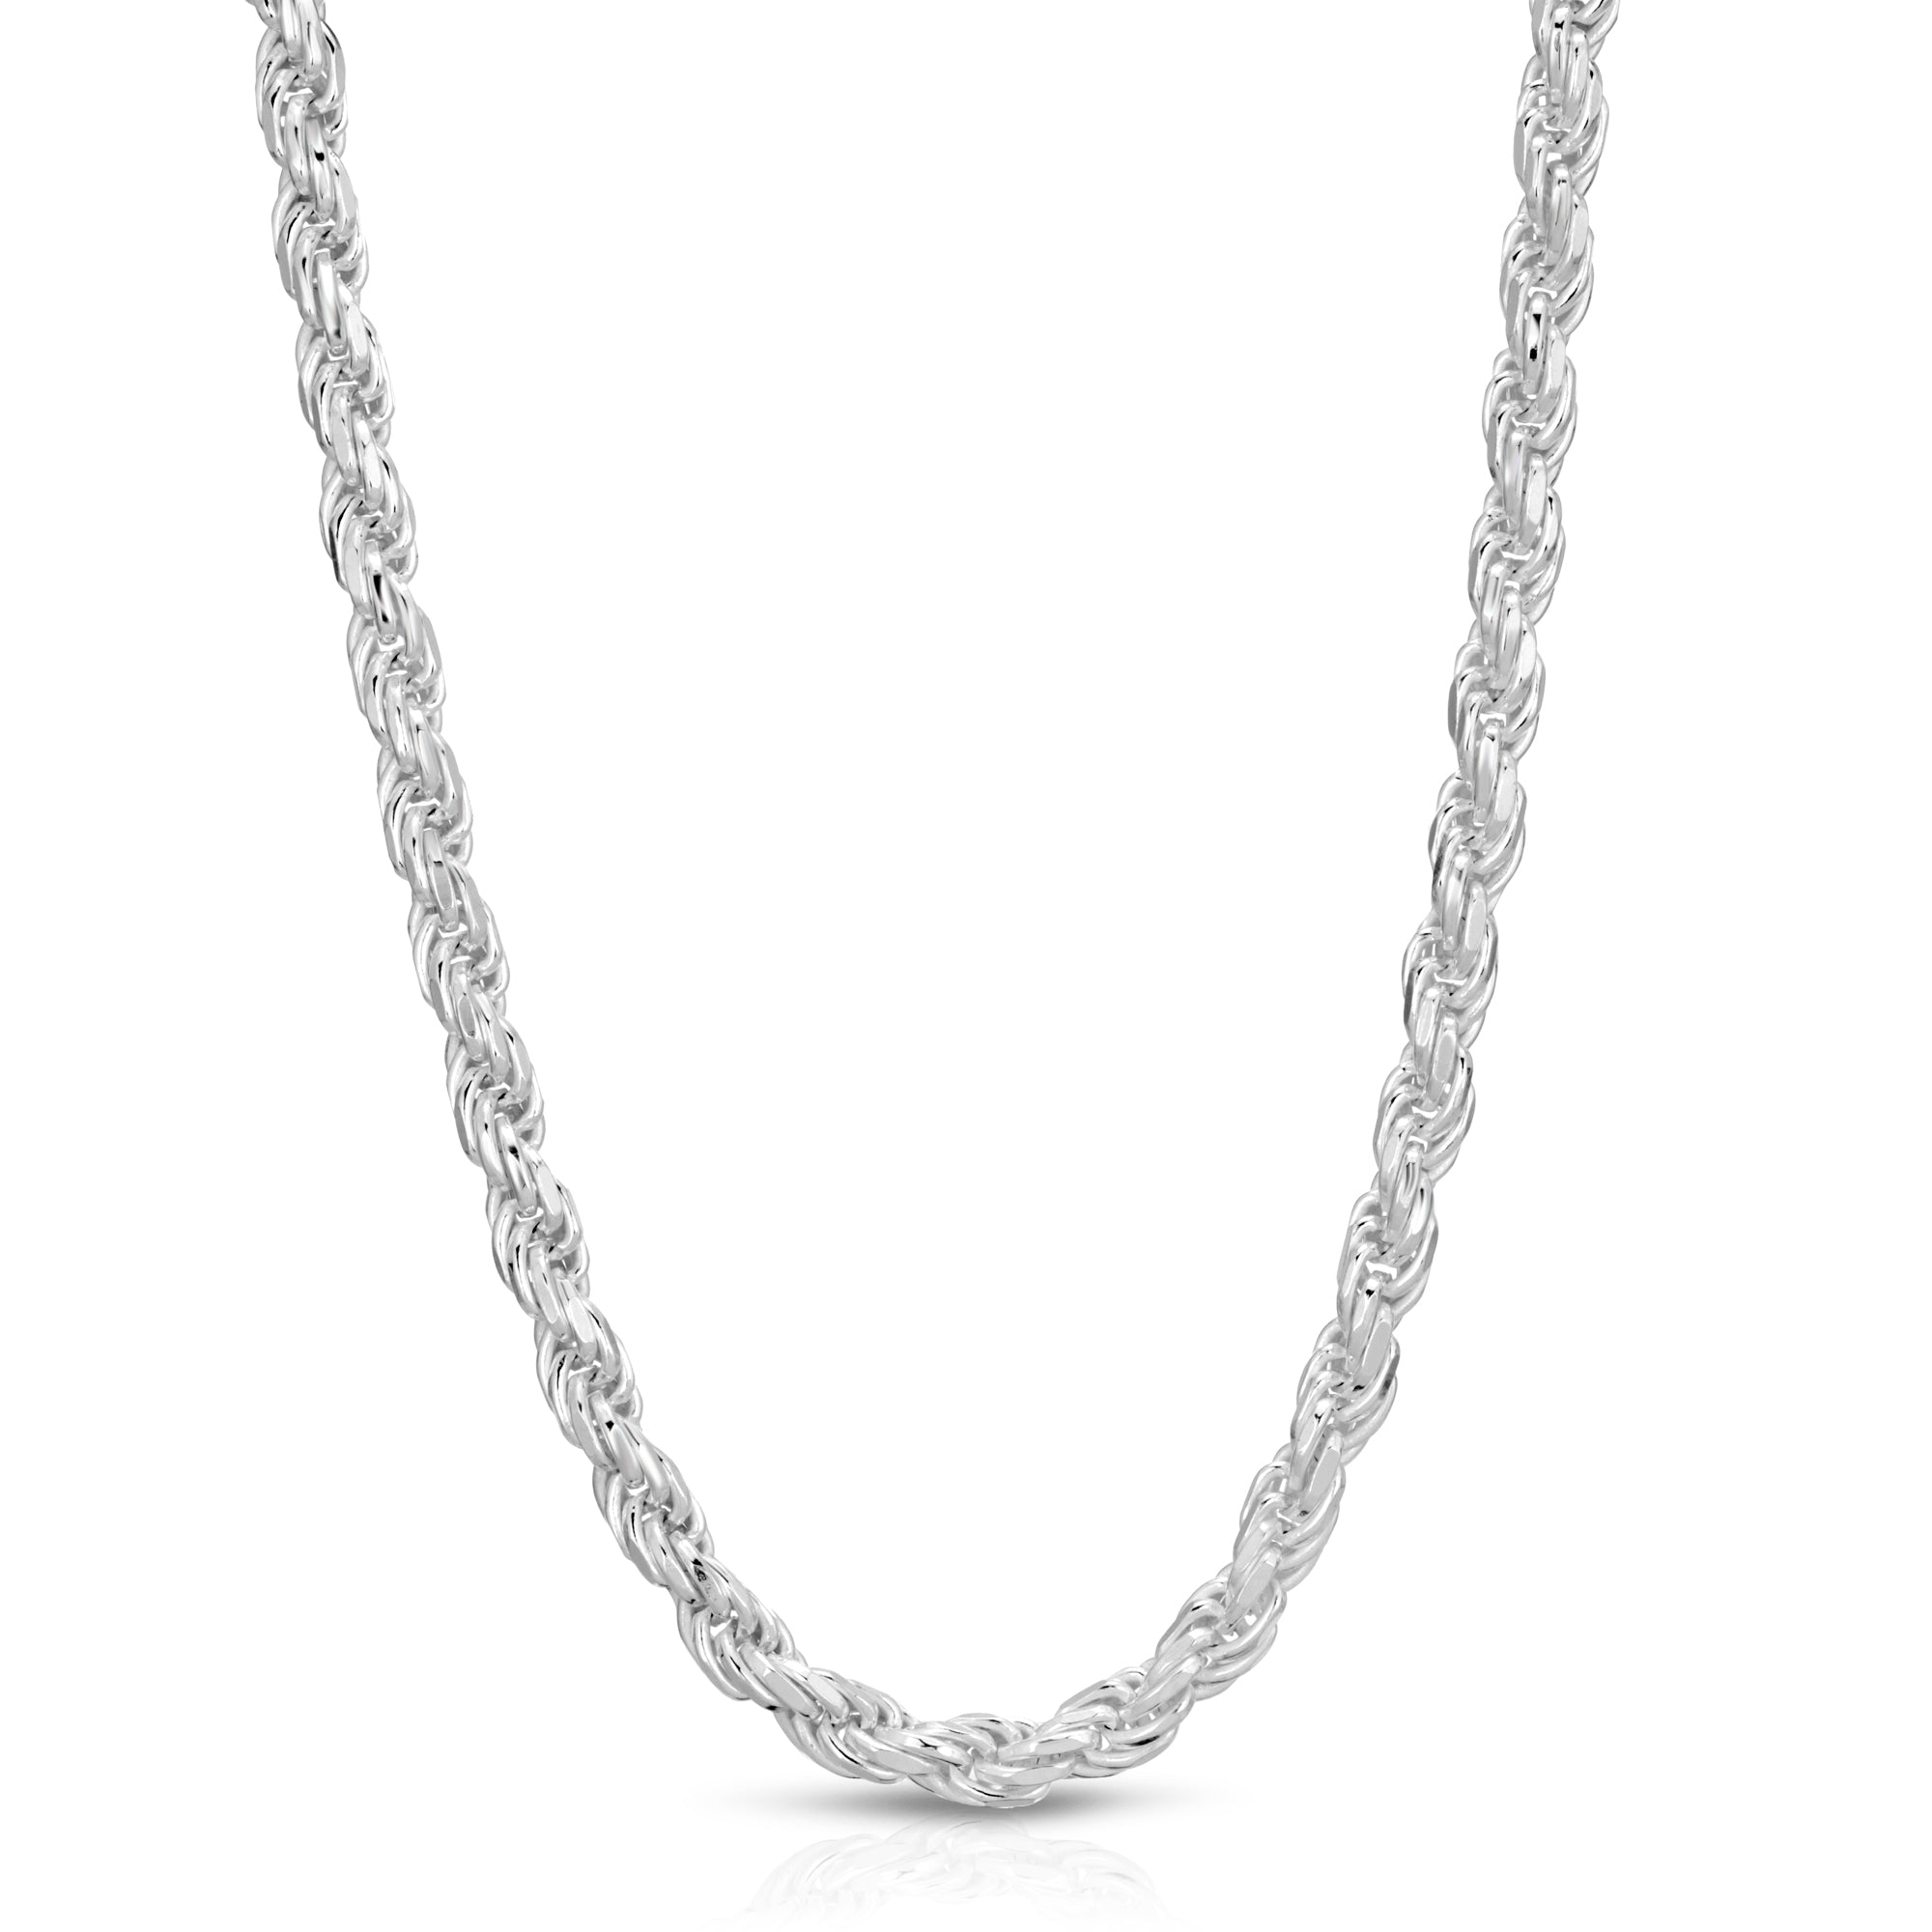 5.5mm Sterling Silver Rope Chain